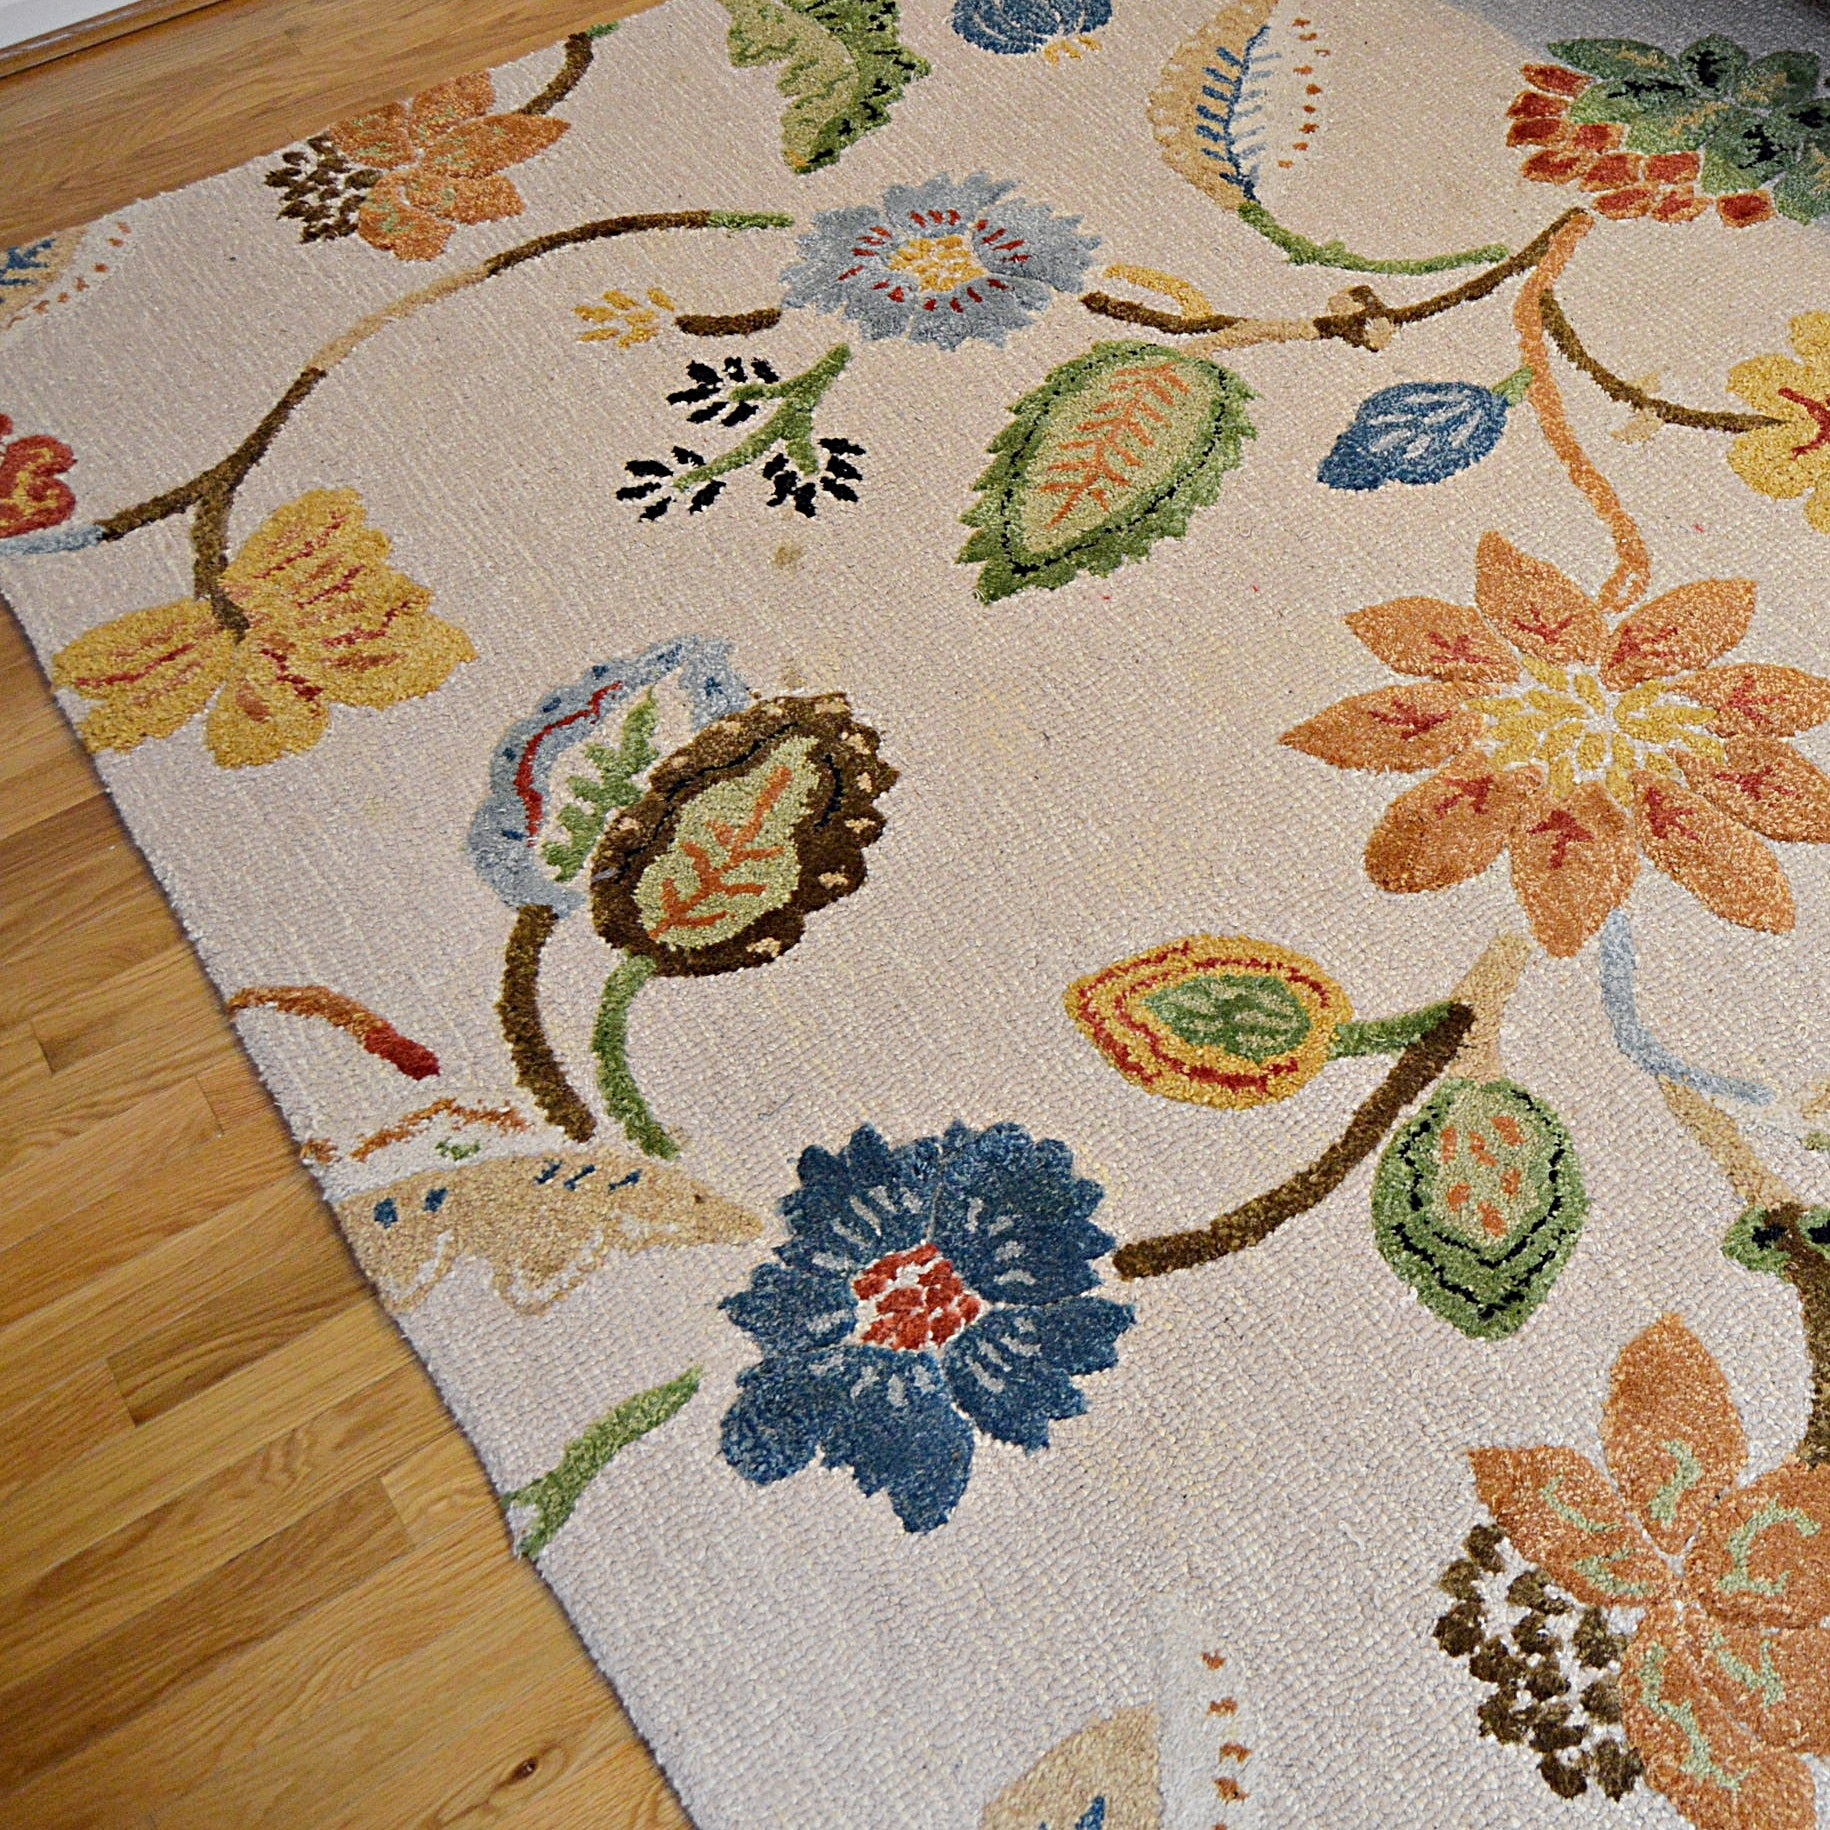 Tufted Wool Area Rug with Cut Pile Flowers and Leaves